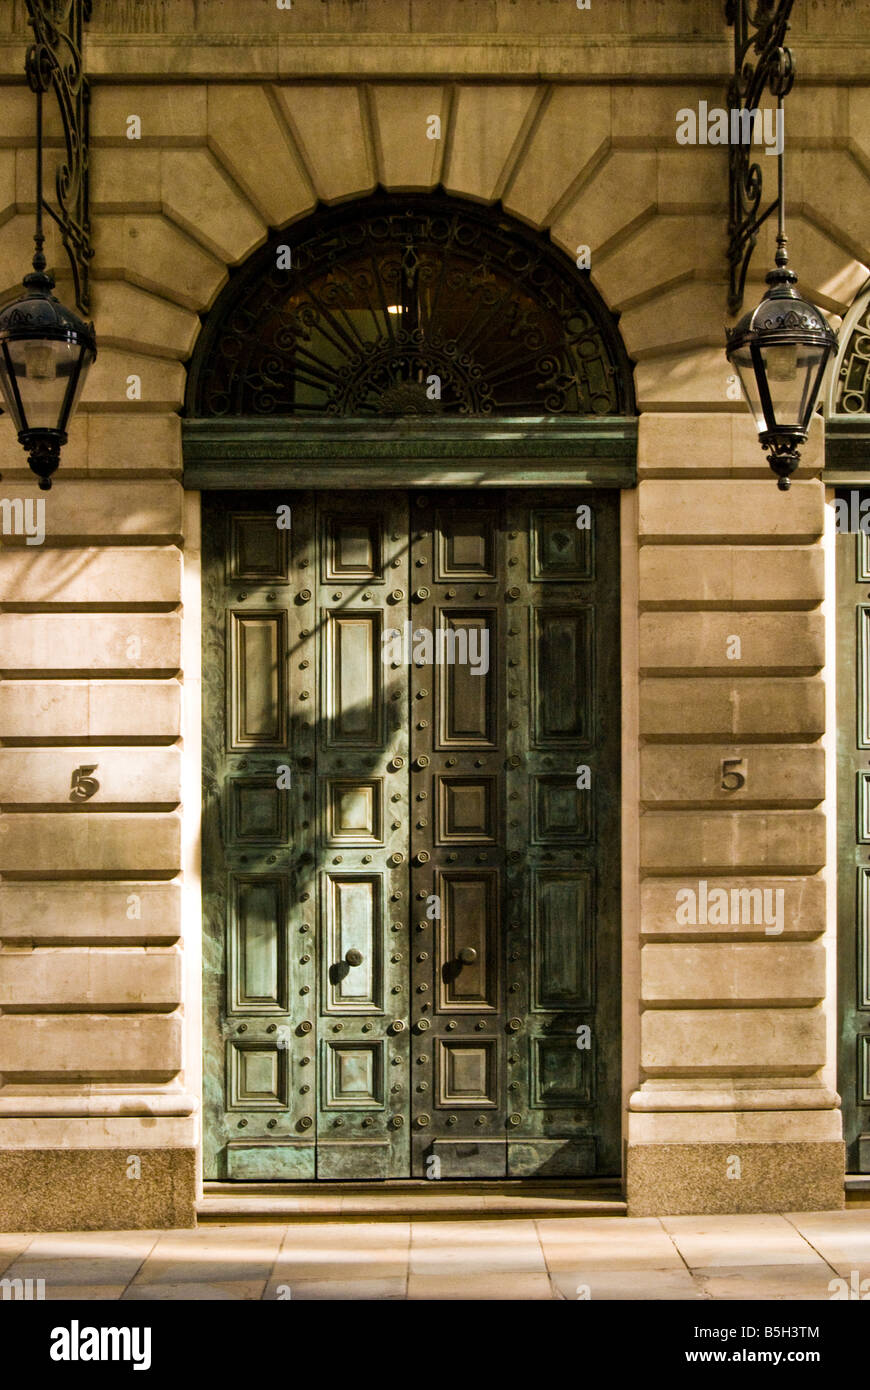 Entrance and doors in London city building. - Stock Image